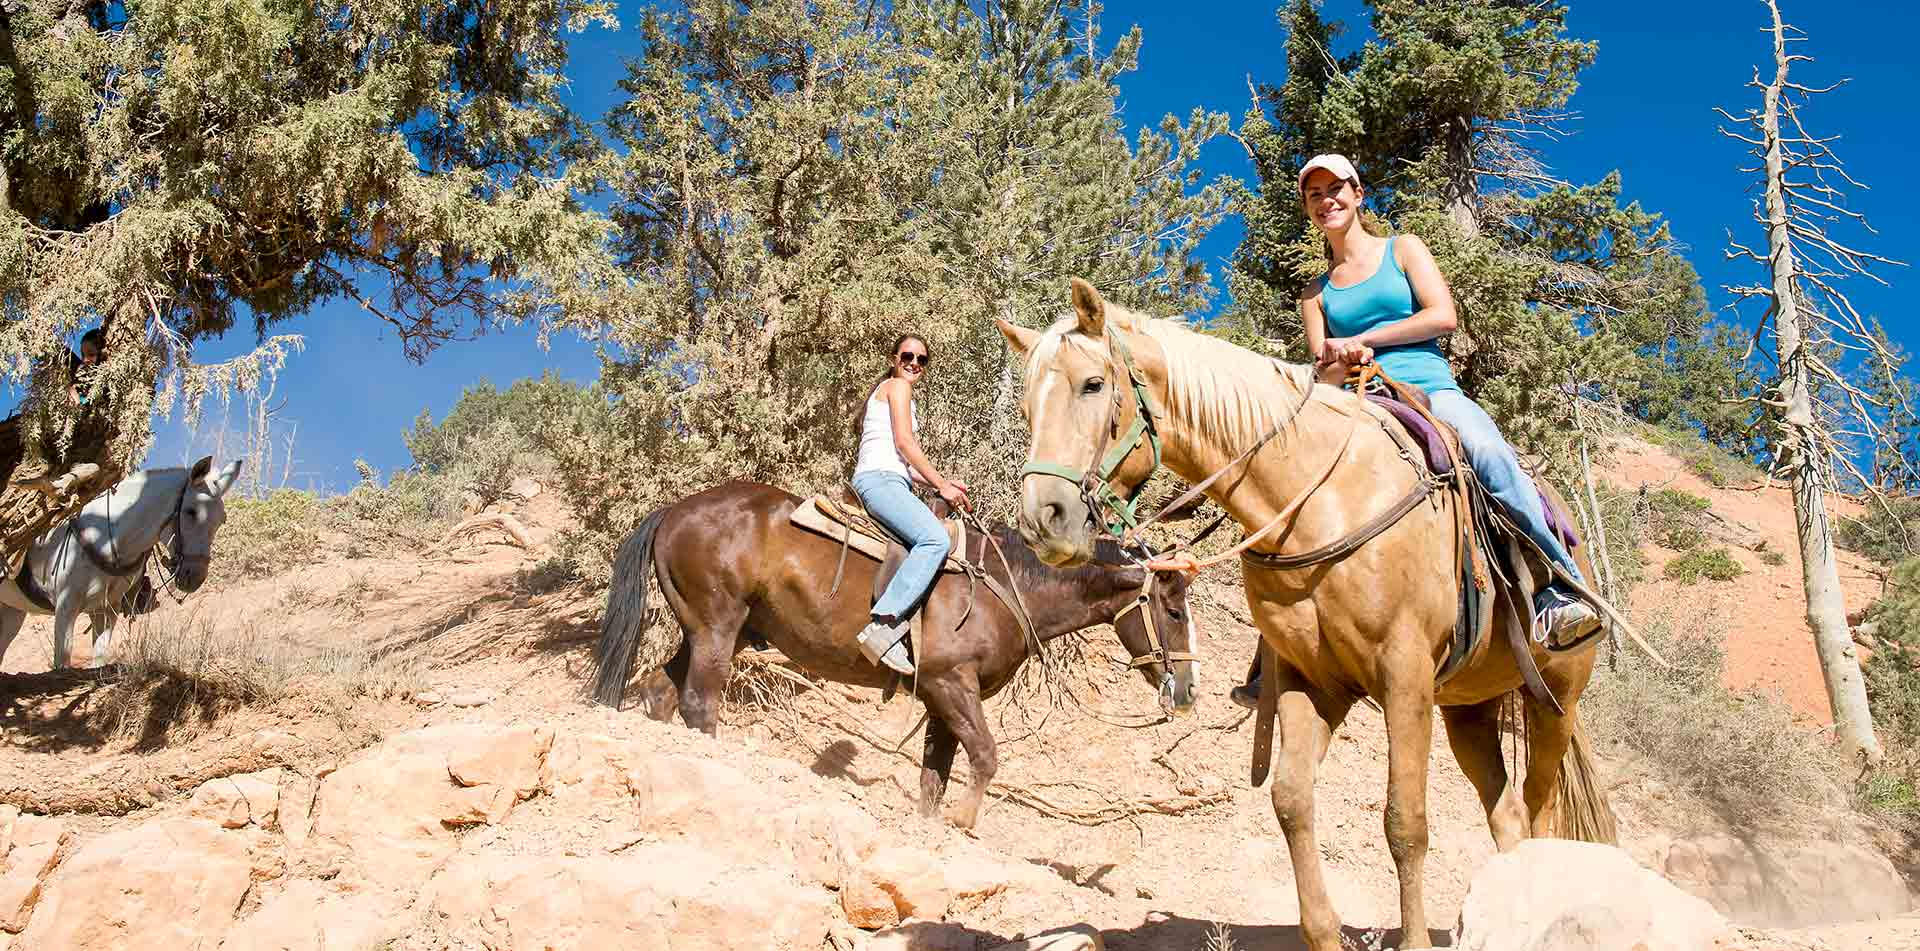 North America United States Utah Bryce Canyon National Park horseback riding rock trail nature - luxury vacation destinations